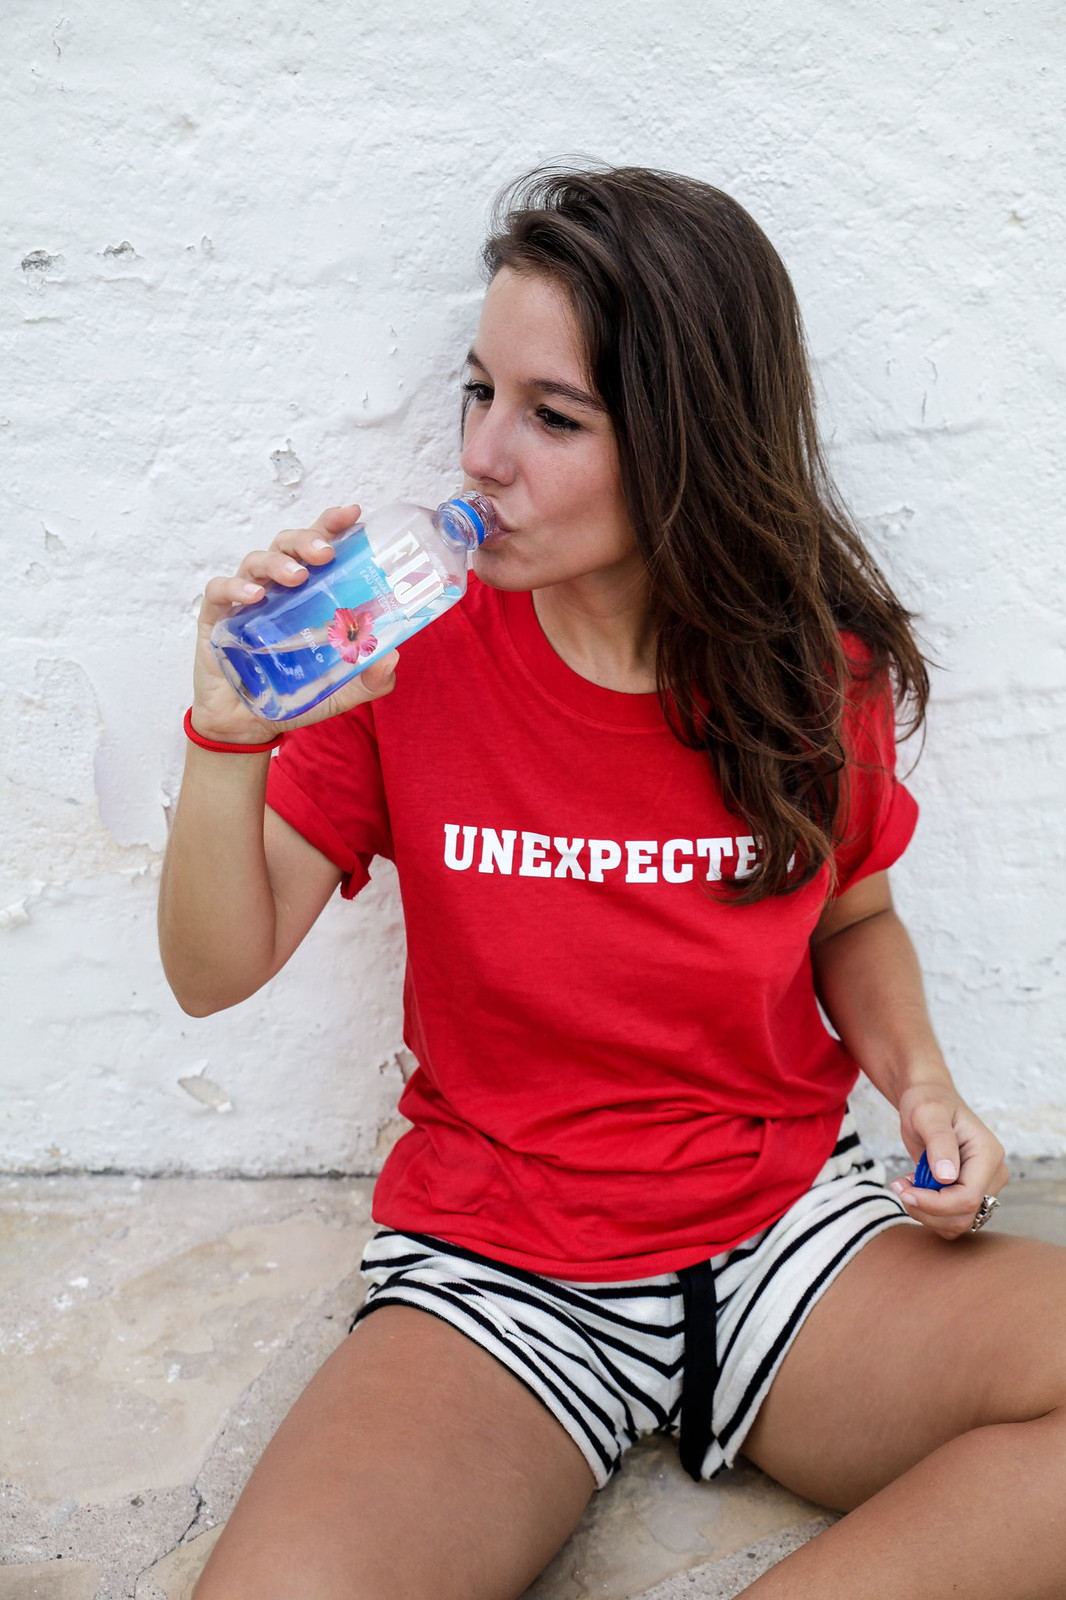 04_shorts_rayas_unexpected_shirt_stripes_shorts_pieces_unexpected_shirt_morinko_red_tshirt_style_theguestgirl_pieces_ootd_influencer_barcelona_verano_fiji_water.